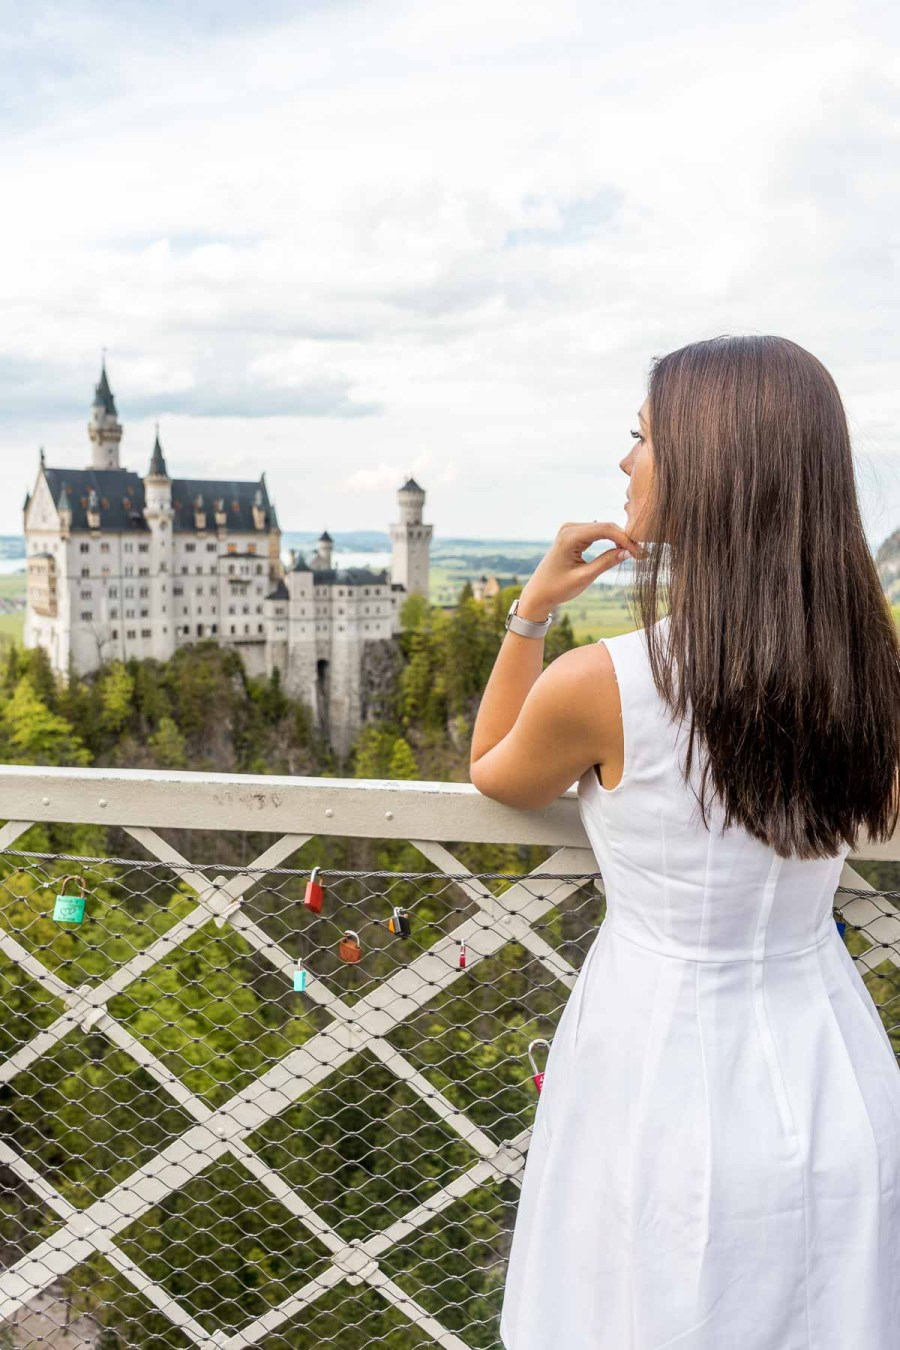 Girl in a white dress looking at the Neuschwanstein Castle from the Marienbrücke